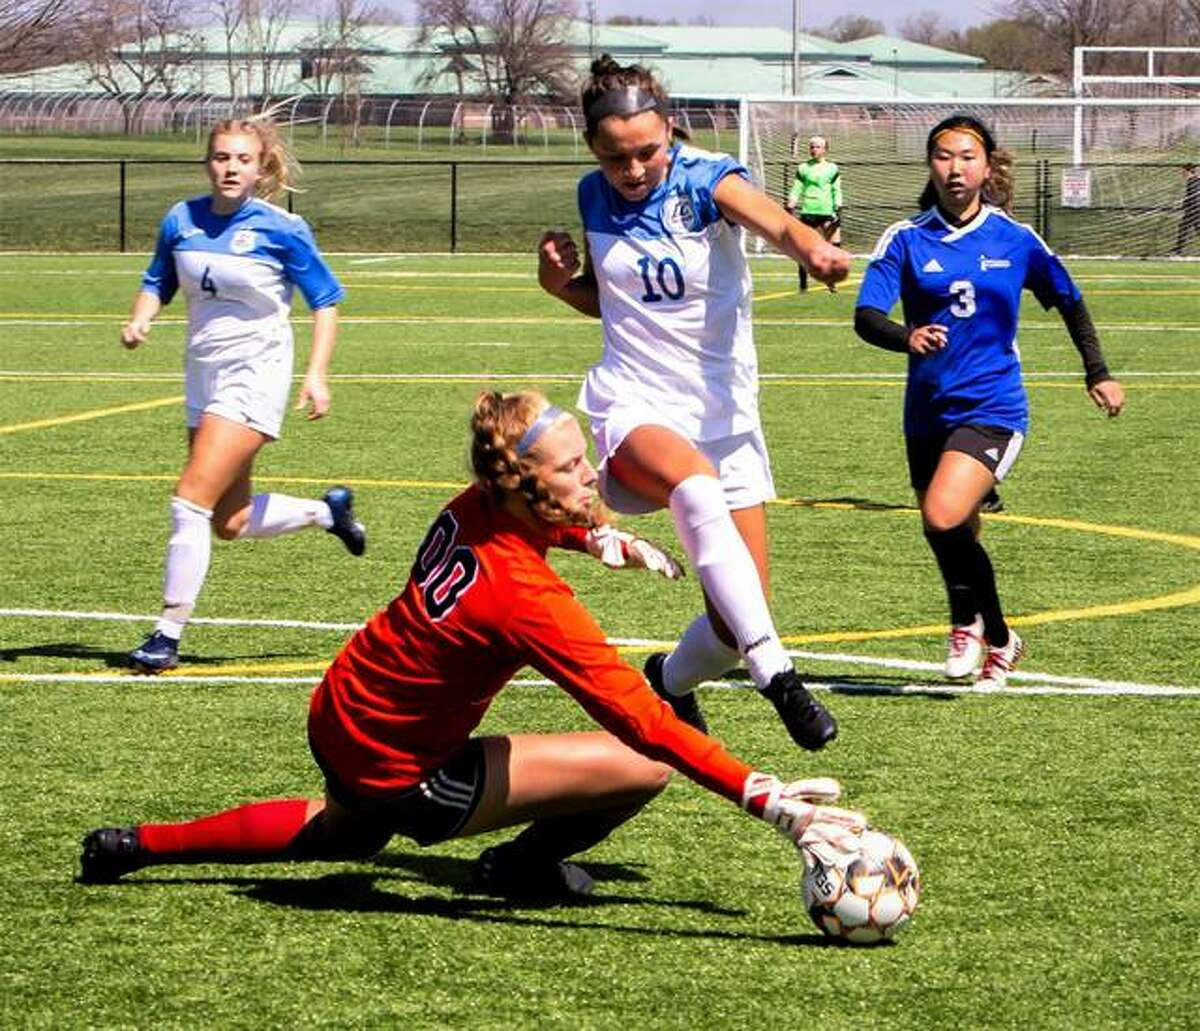 Lewis and Clark's Grace Osvath (10) pressures Eastern Florida State College goalie Marce Thedinga during last spring's rescheduled season at Gordon Moore Park. Osvath, who prepped at St. Dominic's, returns to the LCCC lineup this fall as a freshman because of the NJCAA COVID eligibility grace on players from last school year.